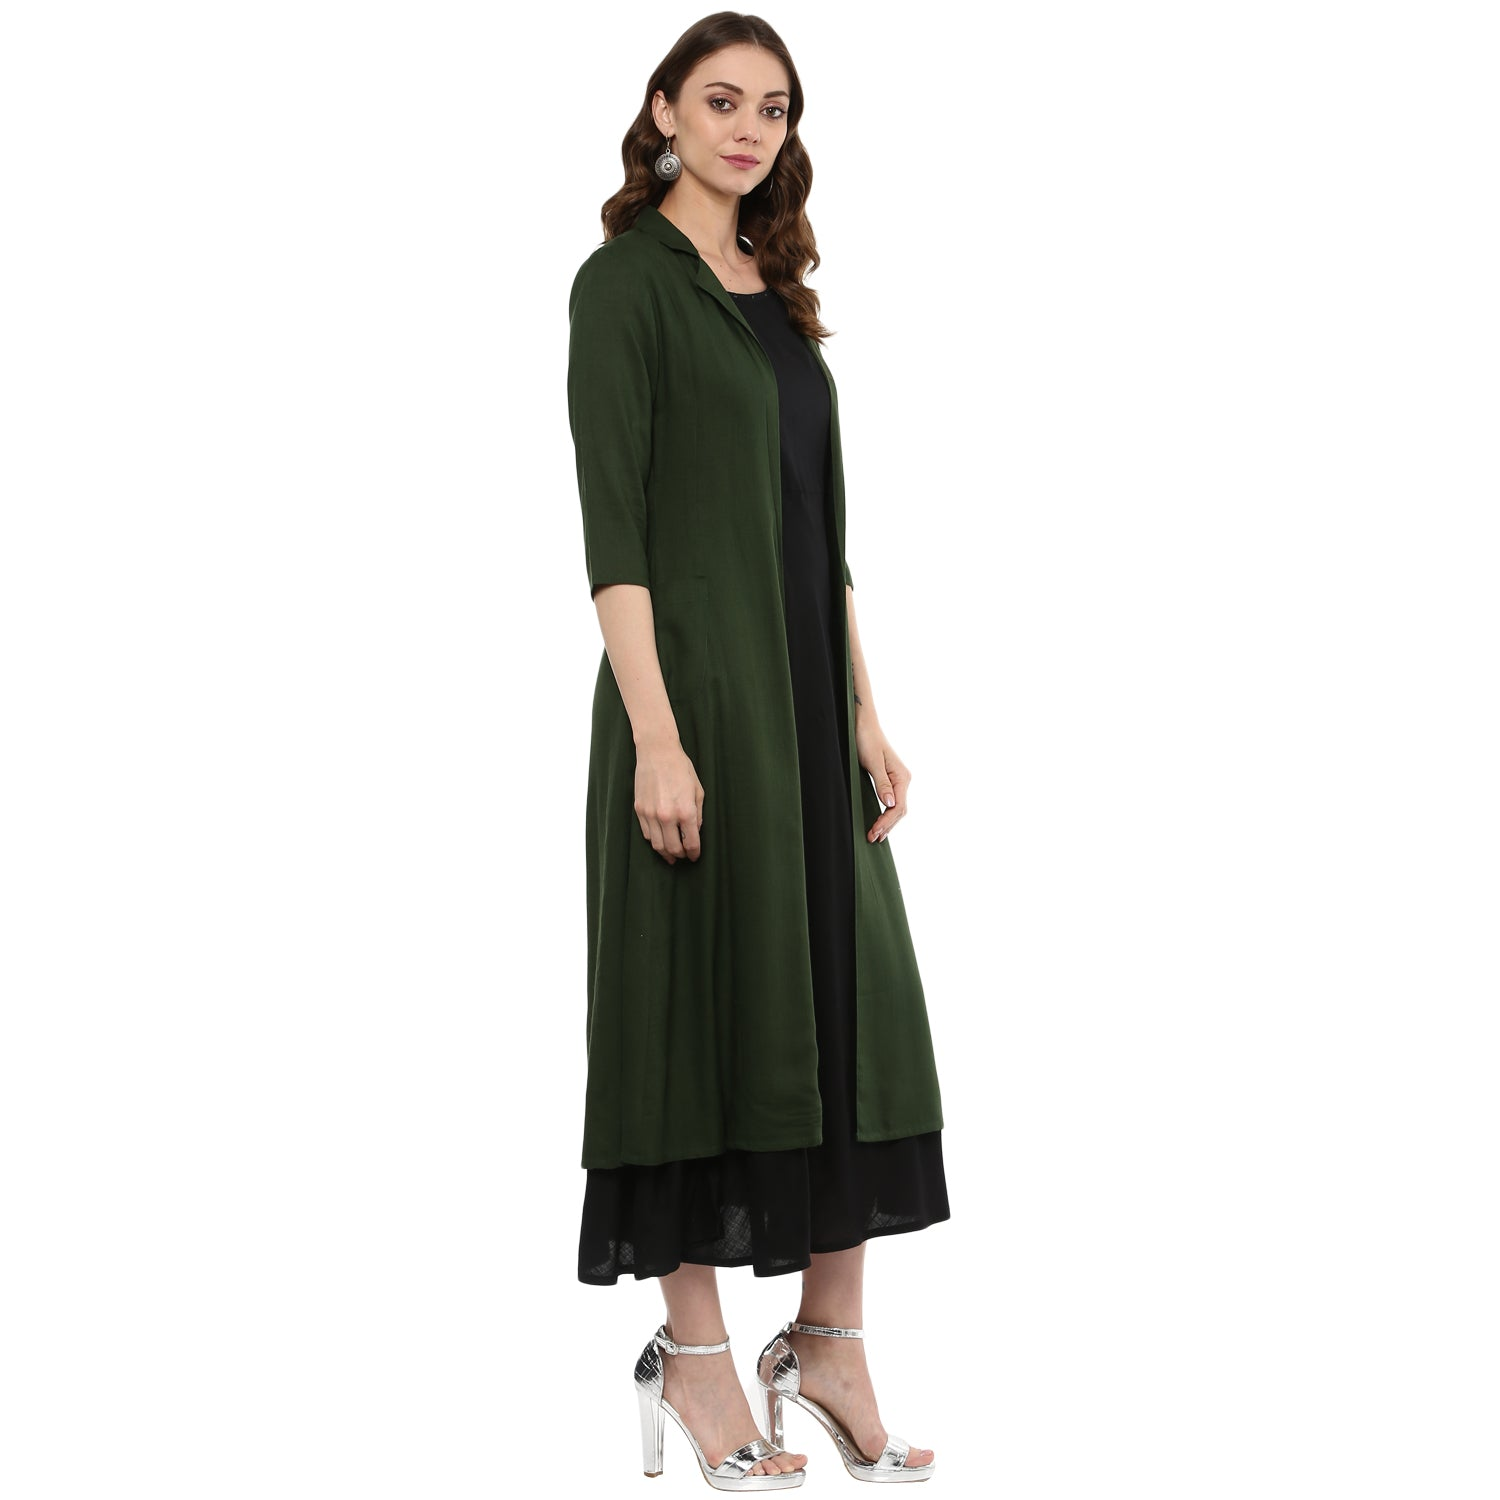 Idalia Black Kurta with Green Layered Upper